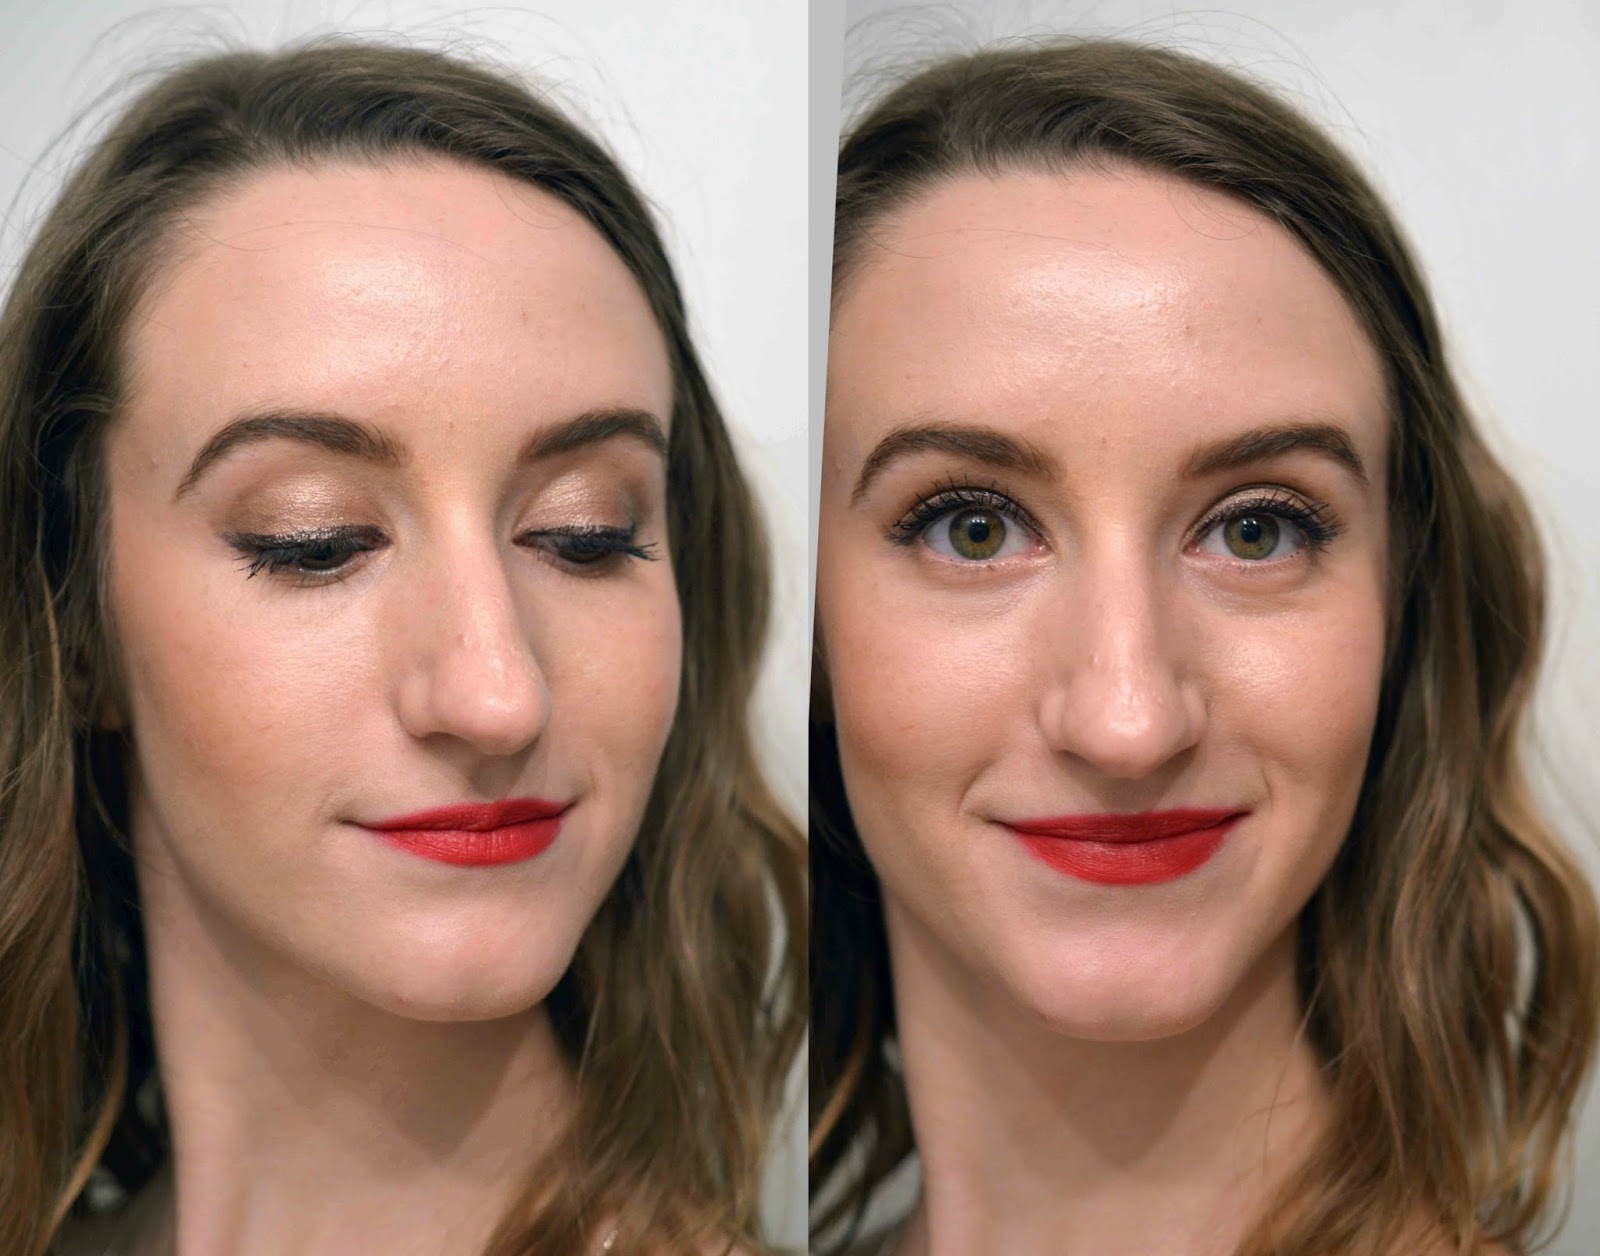 Full face of Revlon makeup